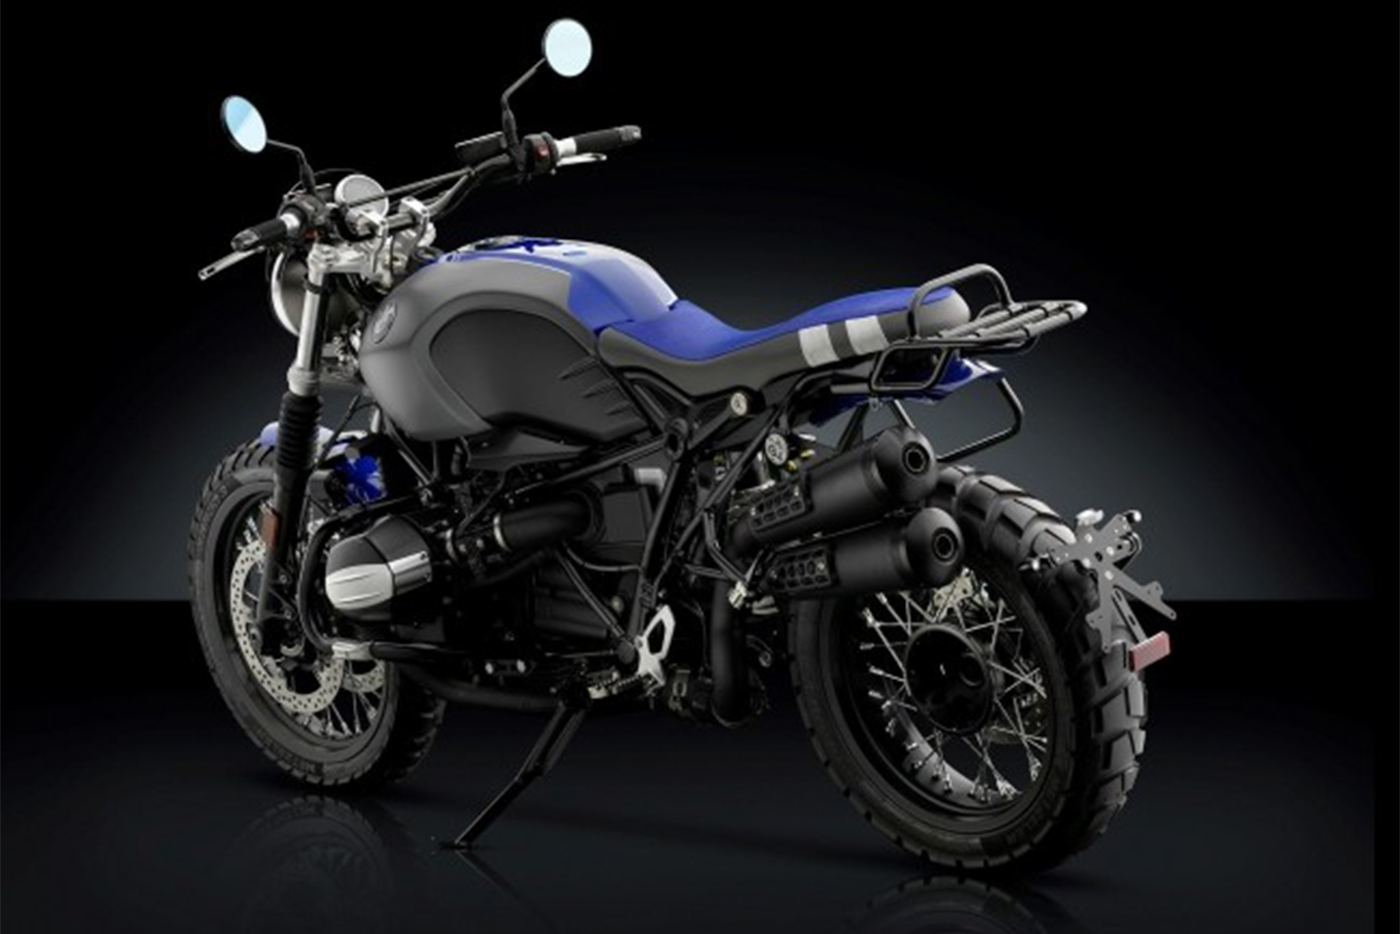 bmw-r-nine-t-scrambler-rizoma-accessories-3.jpg